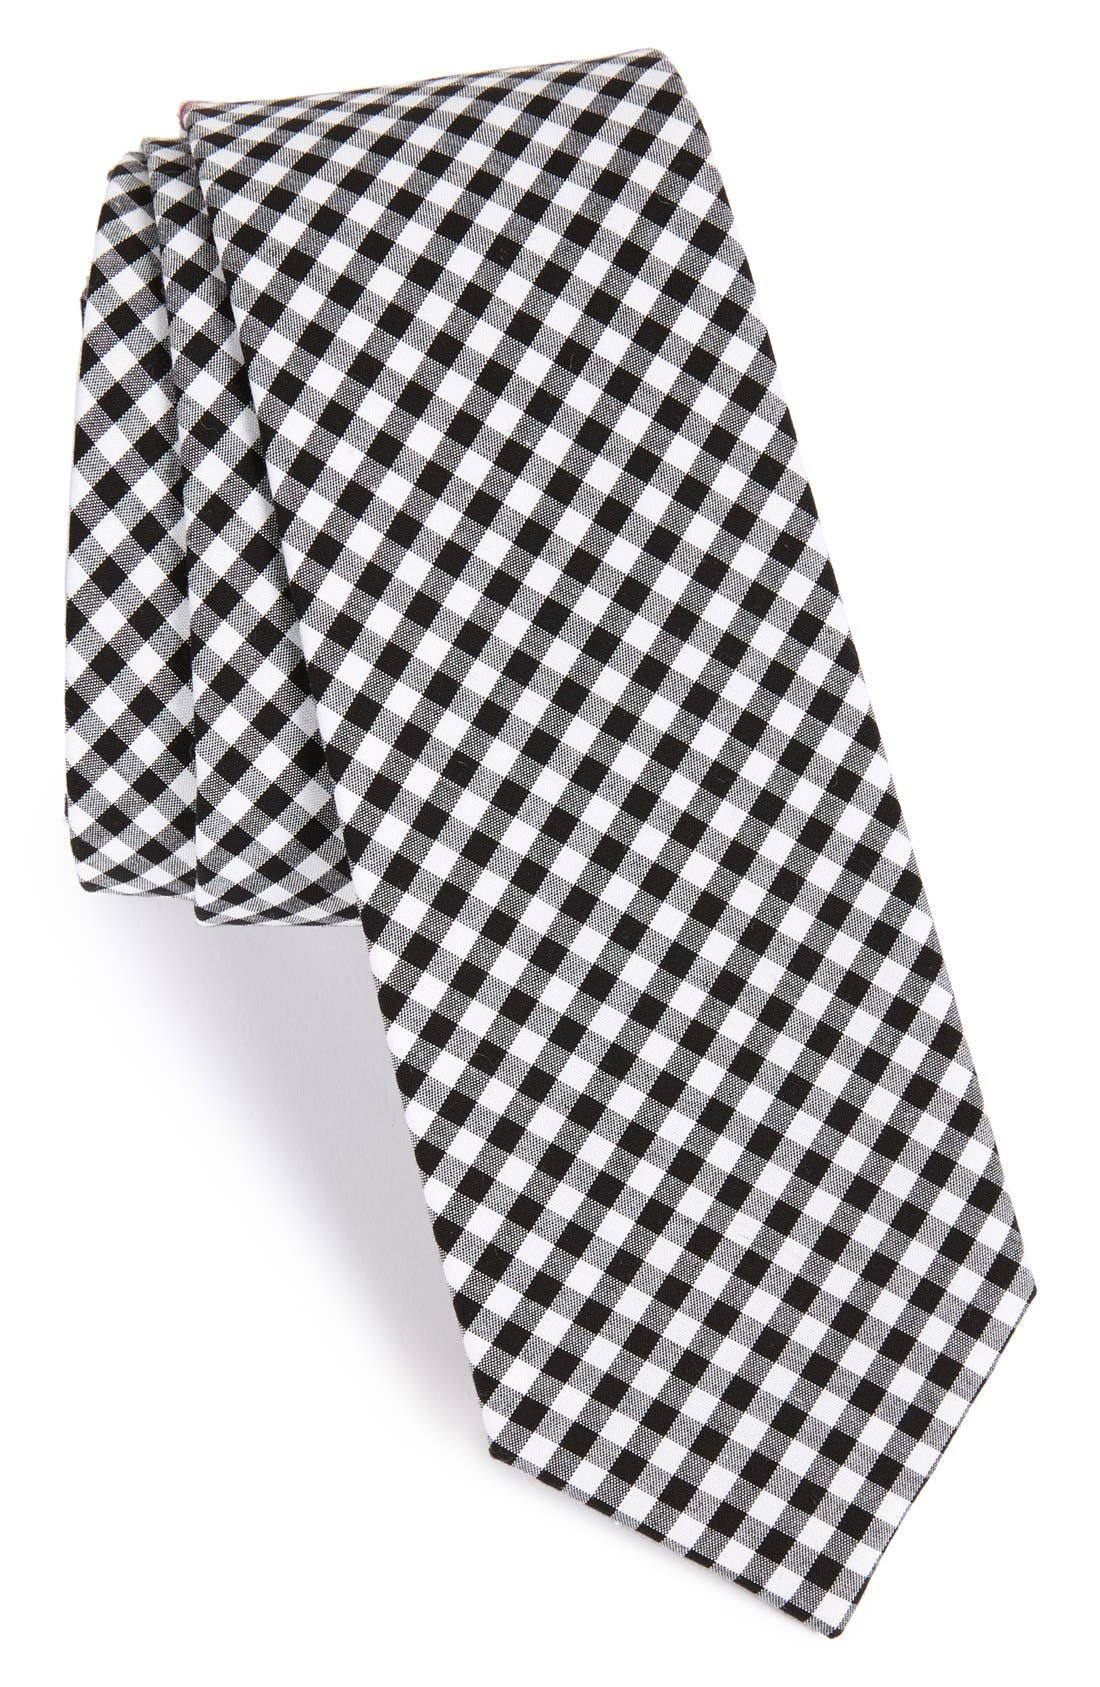 Main Image - The Tie Bar Check Cotton Tie (Online Only)